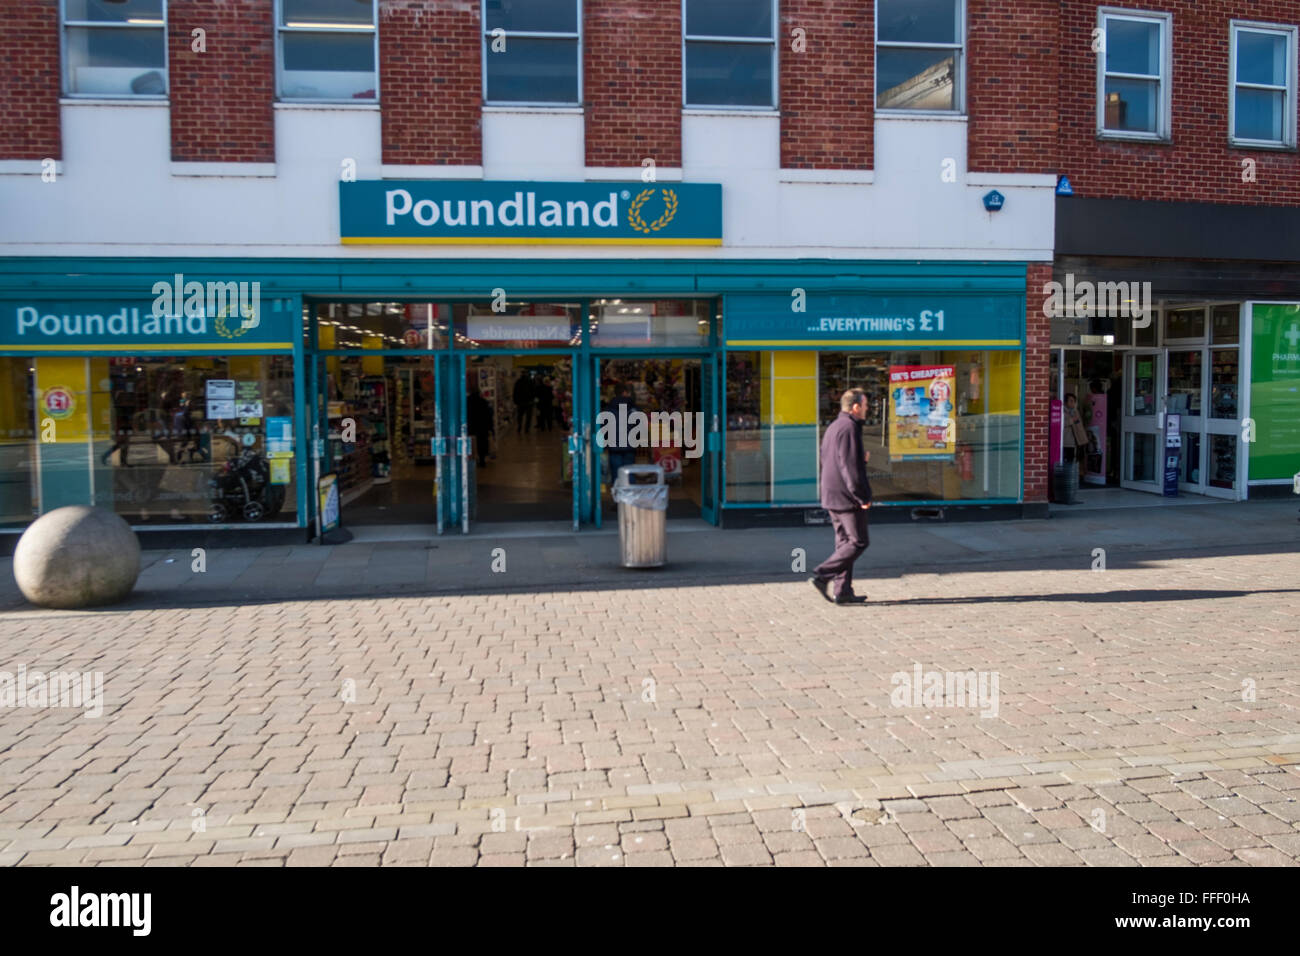 Poundland In Andover Hampshire - Stock Image